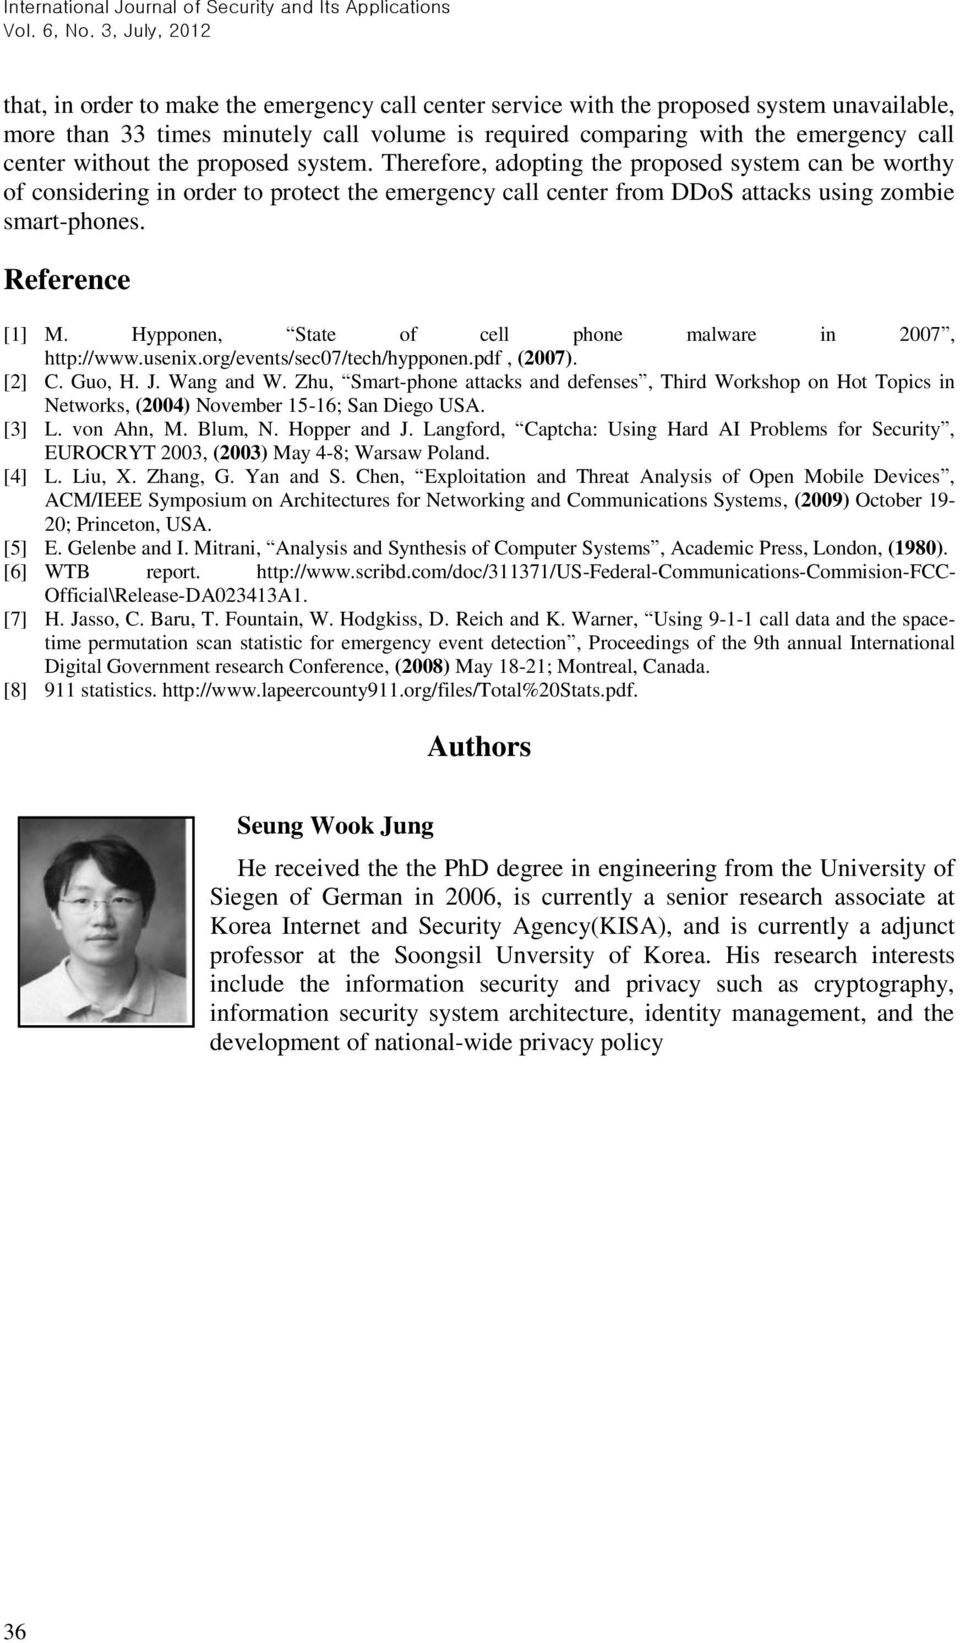 Hypponen, State of cell phone malware in 2007, http://www.usenix.org/events/sec07/tech/hypponen.pdf, (2007). [2] C. Guo, H. J. Wang and W.